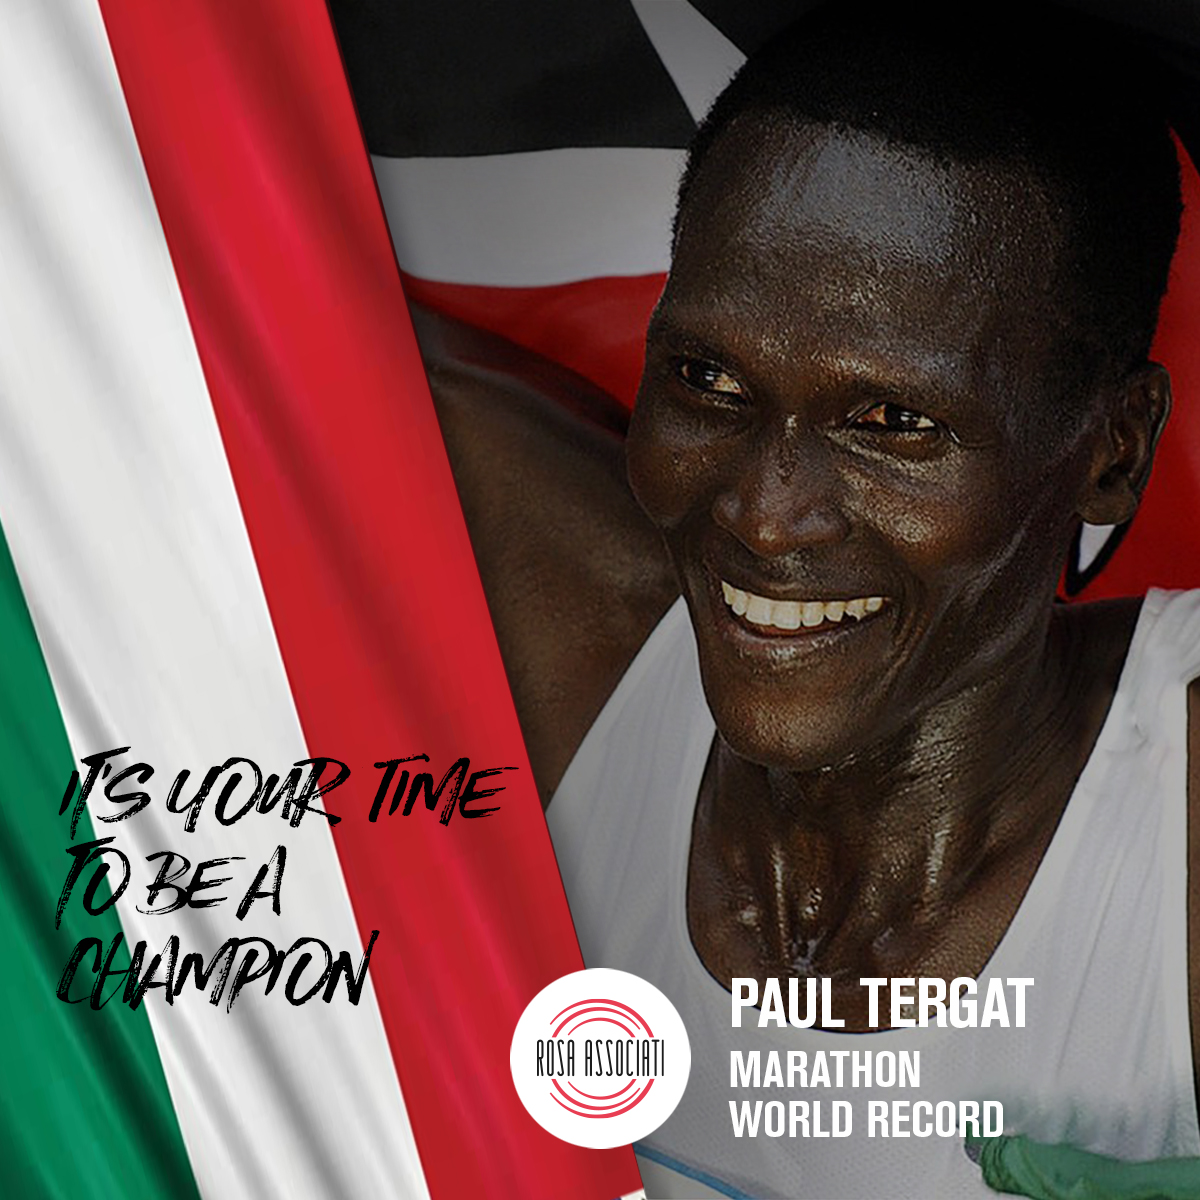 21 2020 - Campagna social We can win this race together-Paul Tergat